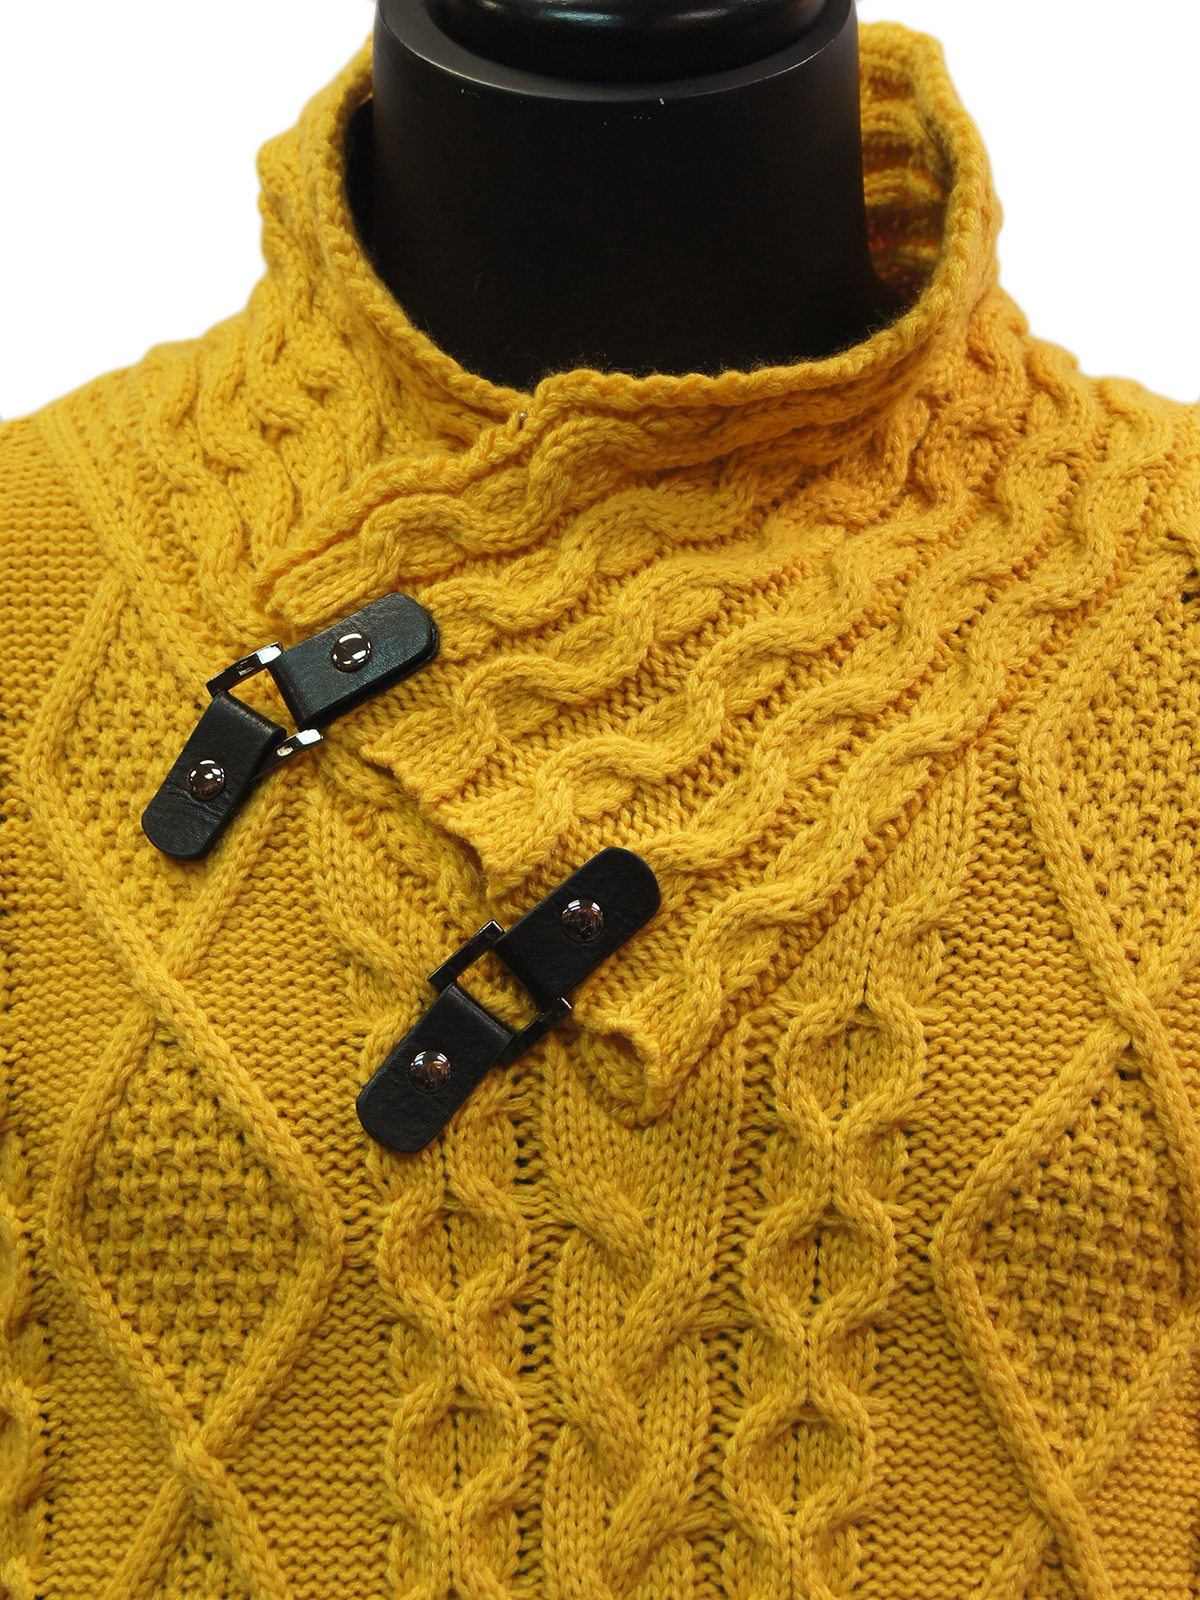 358f5d36bd56 Mens Mustard Gold Cable Knit Leather Toggle High Collar Bulky Pullover  Sweater. 100% Satisfaction ...